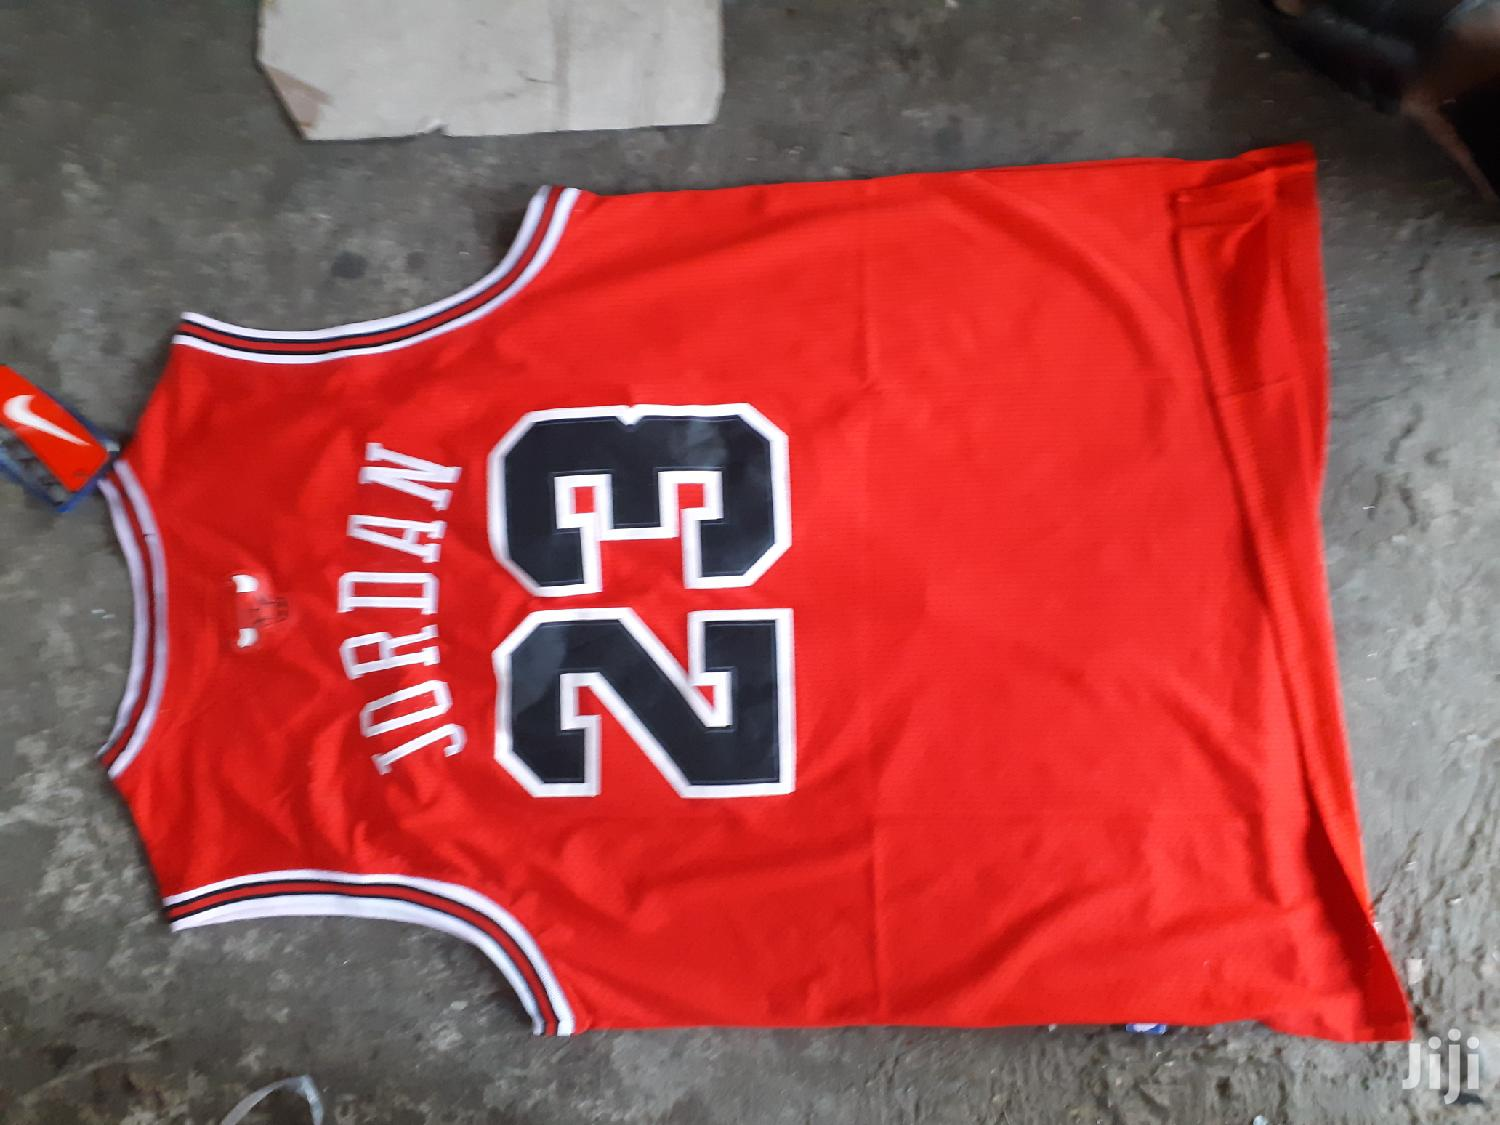 Original Basketball Jerseys At Cool Price